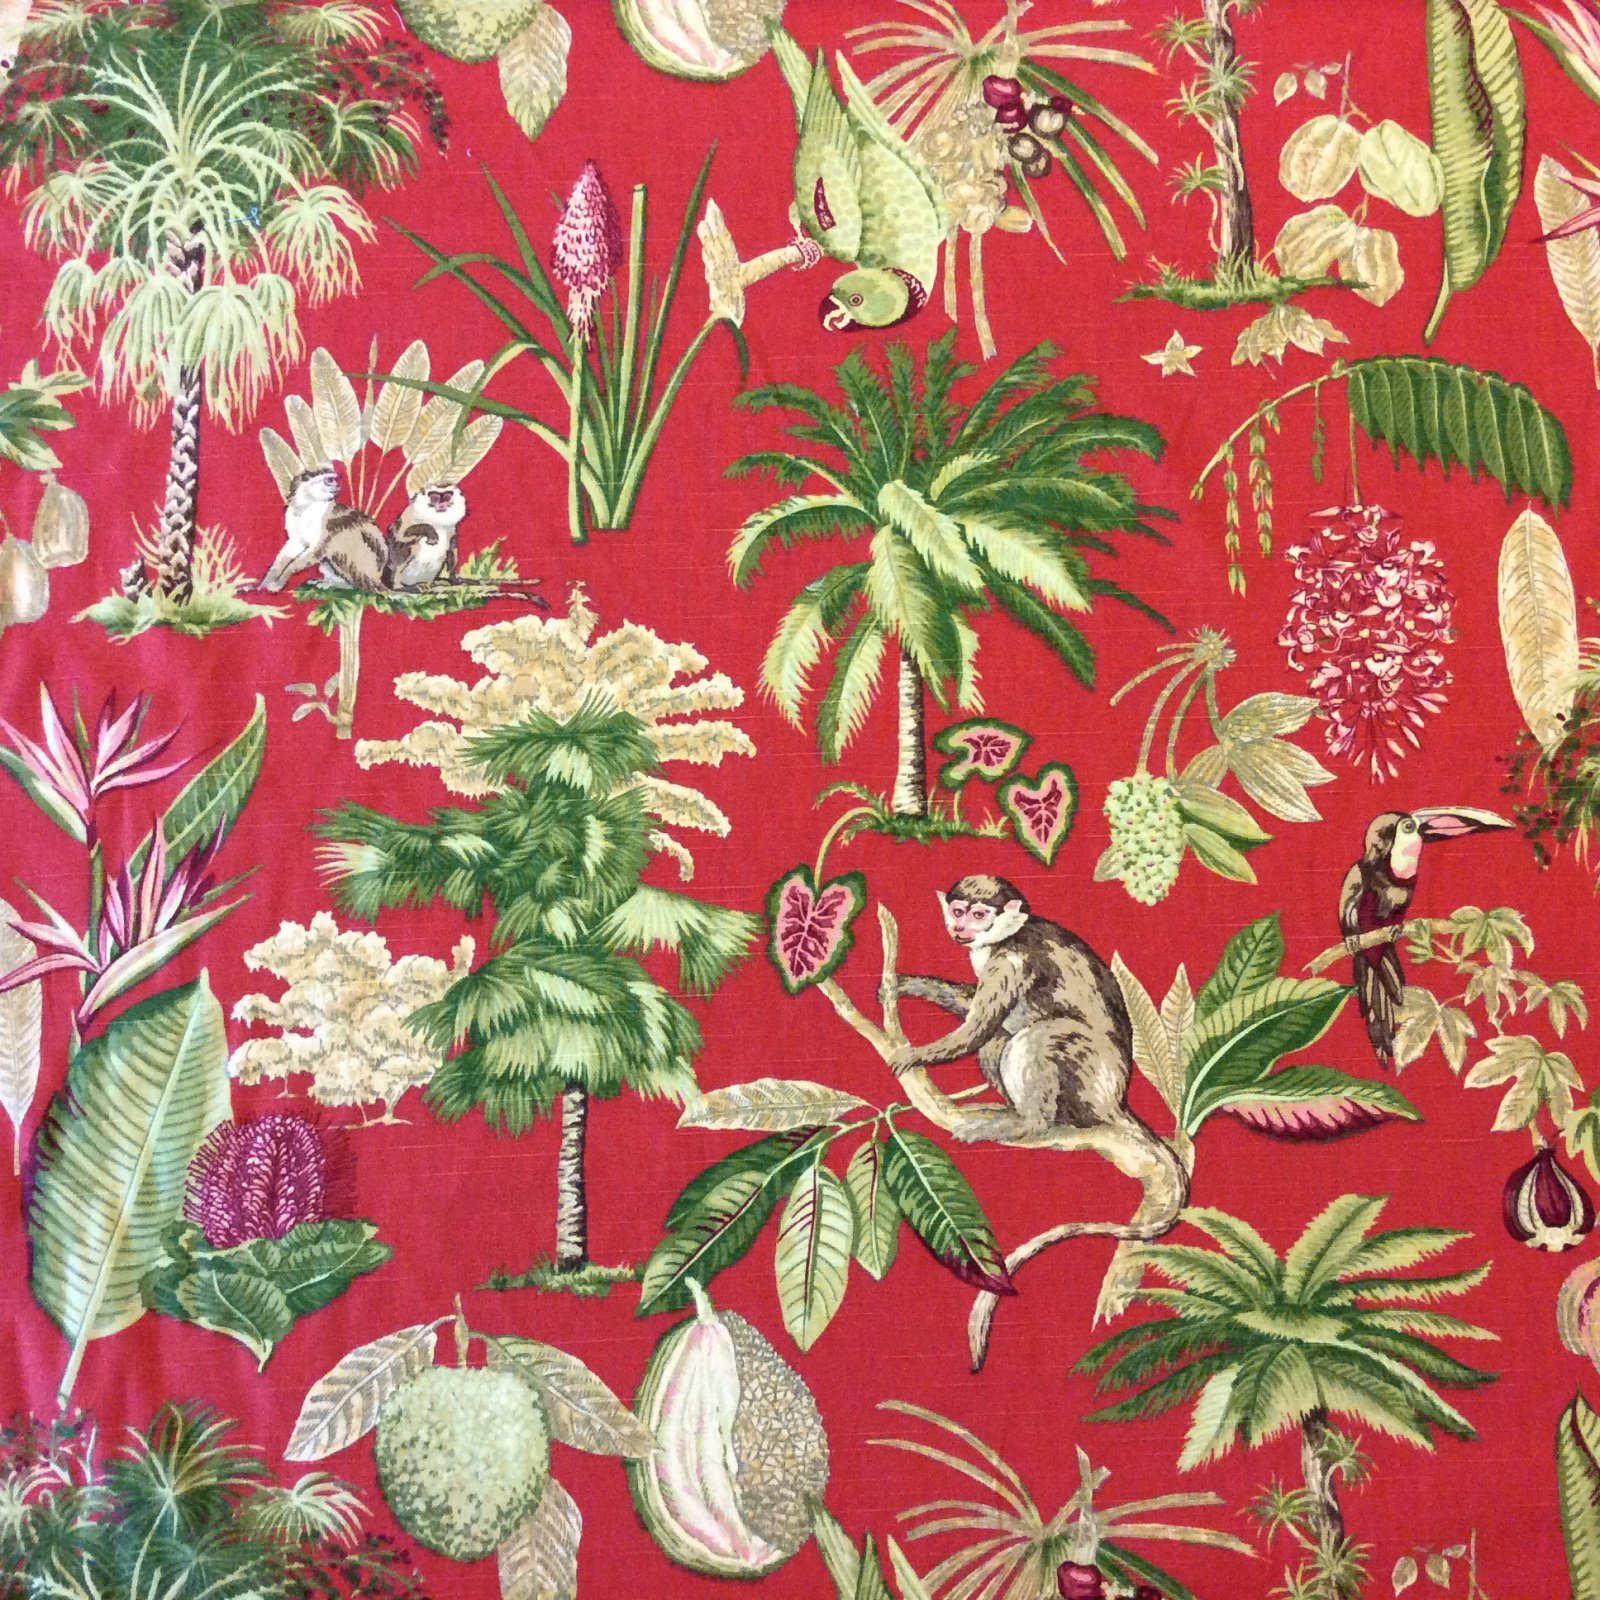 NL237 Red Tropical Jungle Monkey Parrot Flower Fruit Drapery Home Decor  Fabric